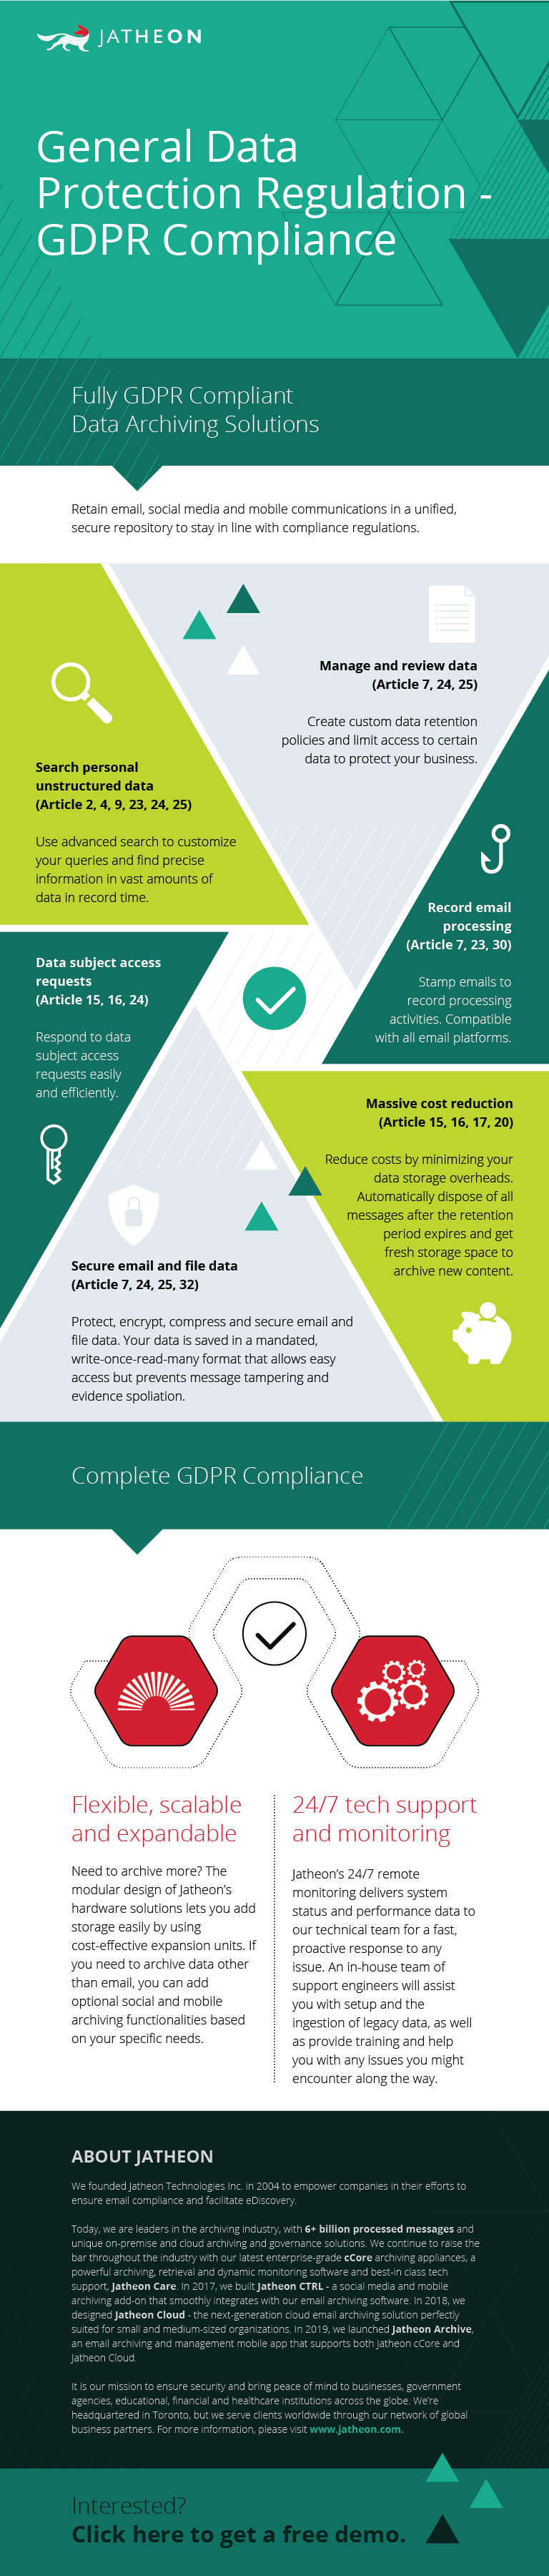 GDPR compliance for email